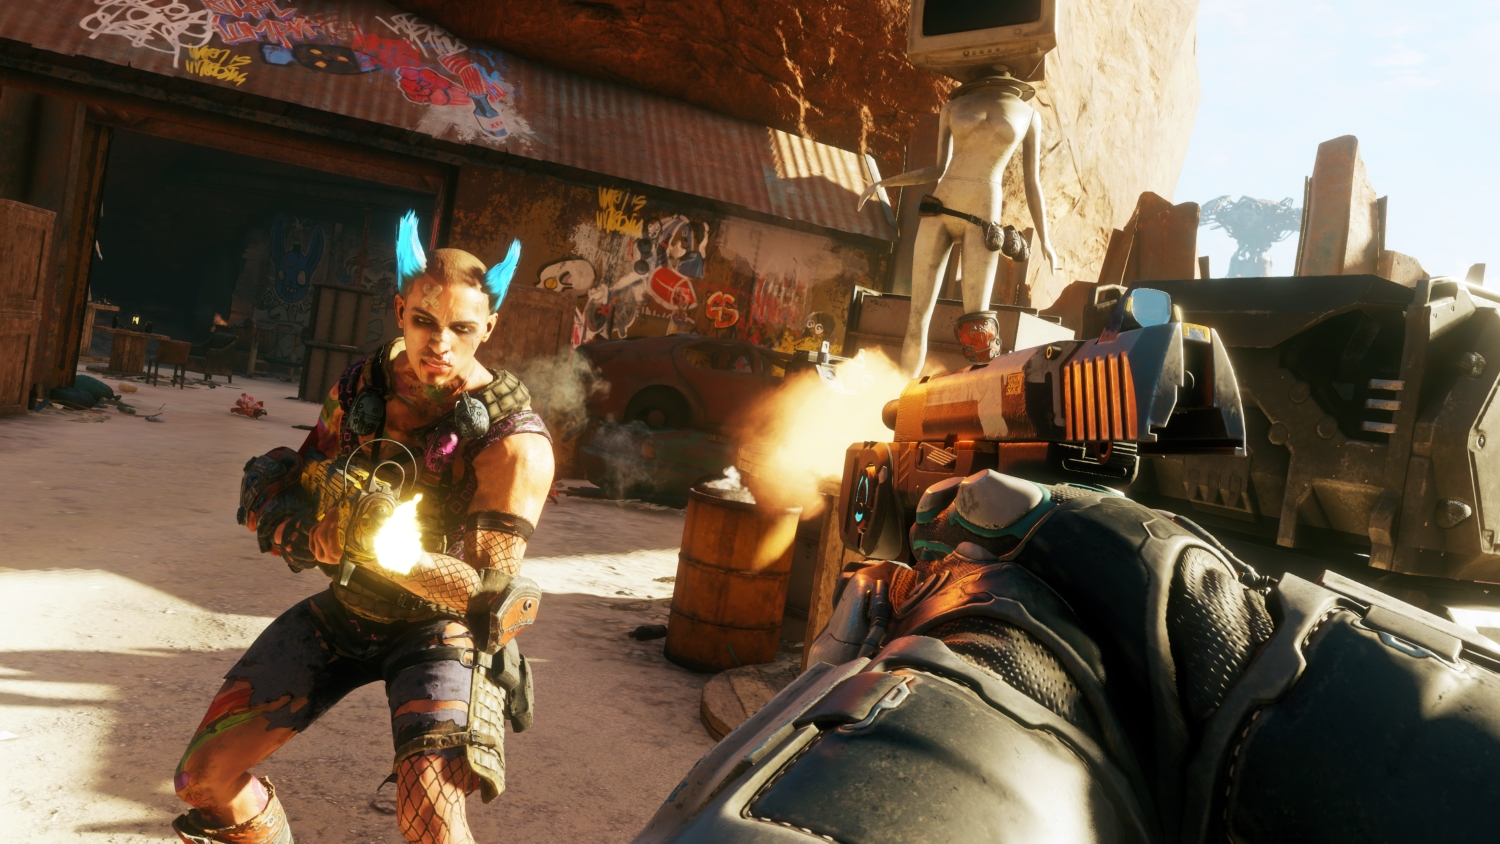 Rage 2 debut is half that of Rage 1 in latest UK charts